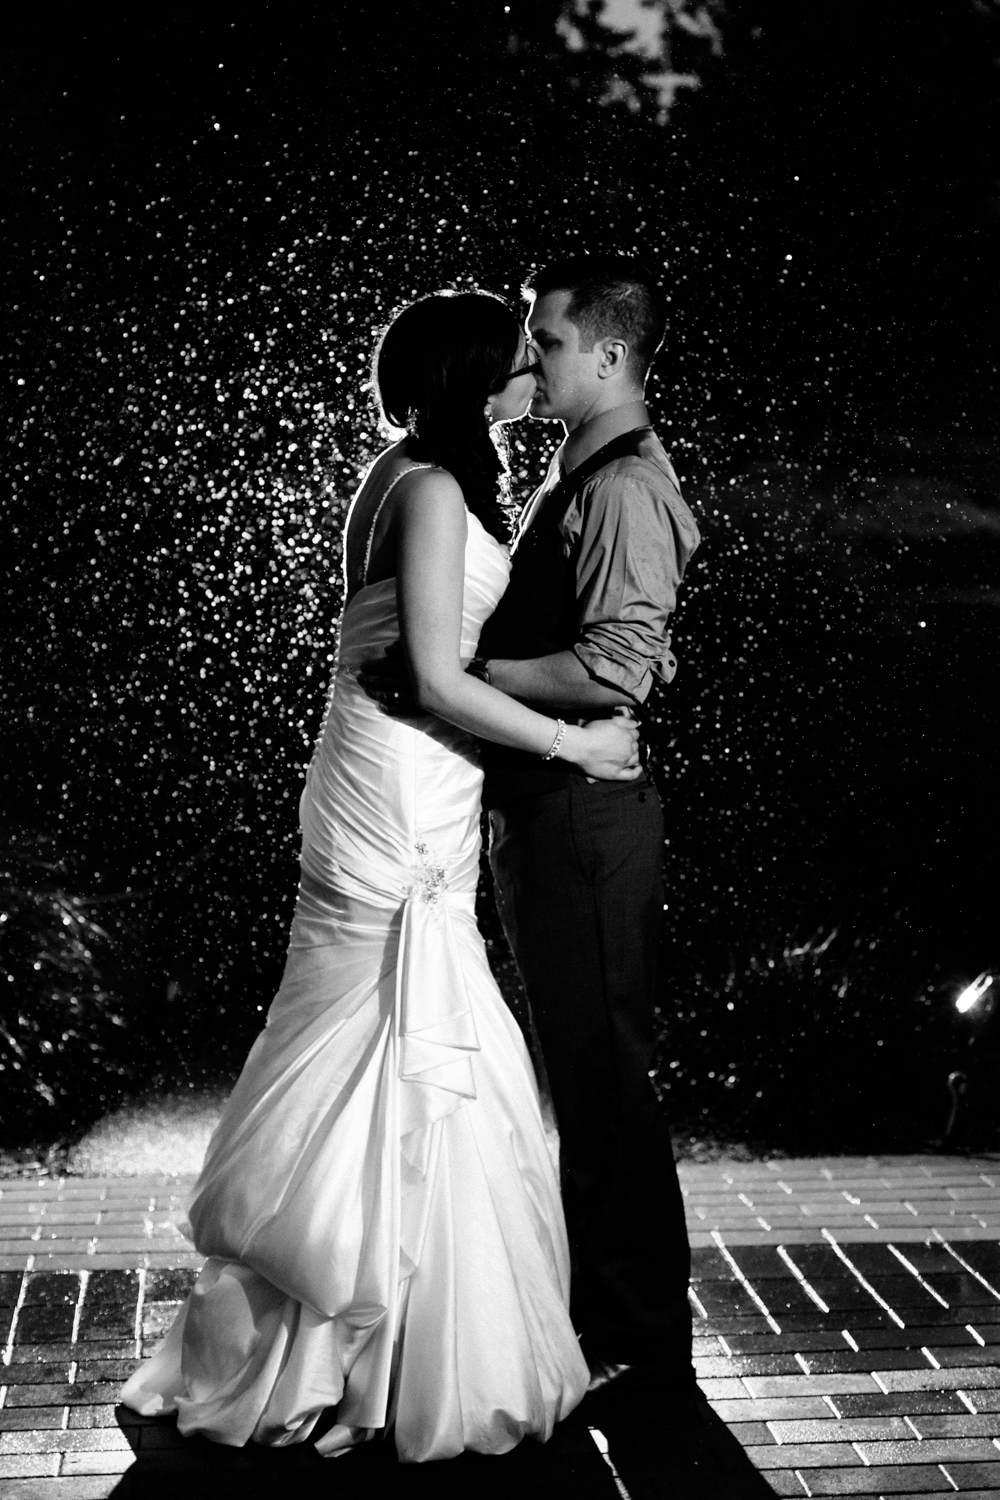 Bride and groom kiss in the rain